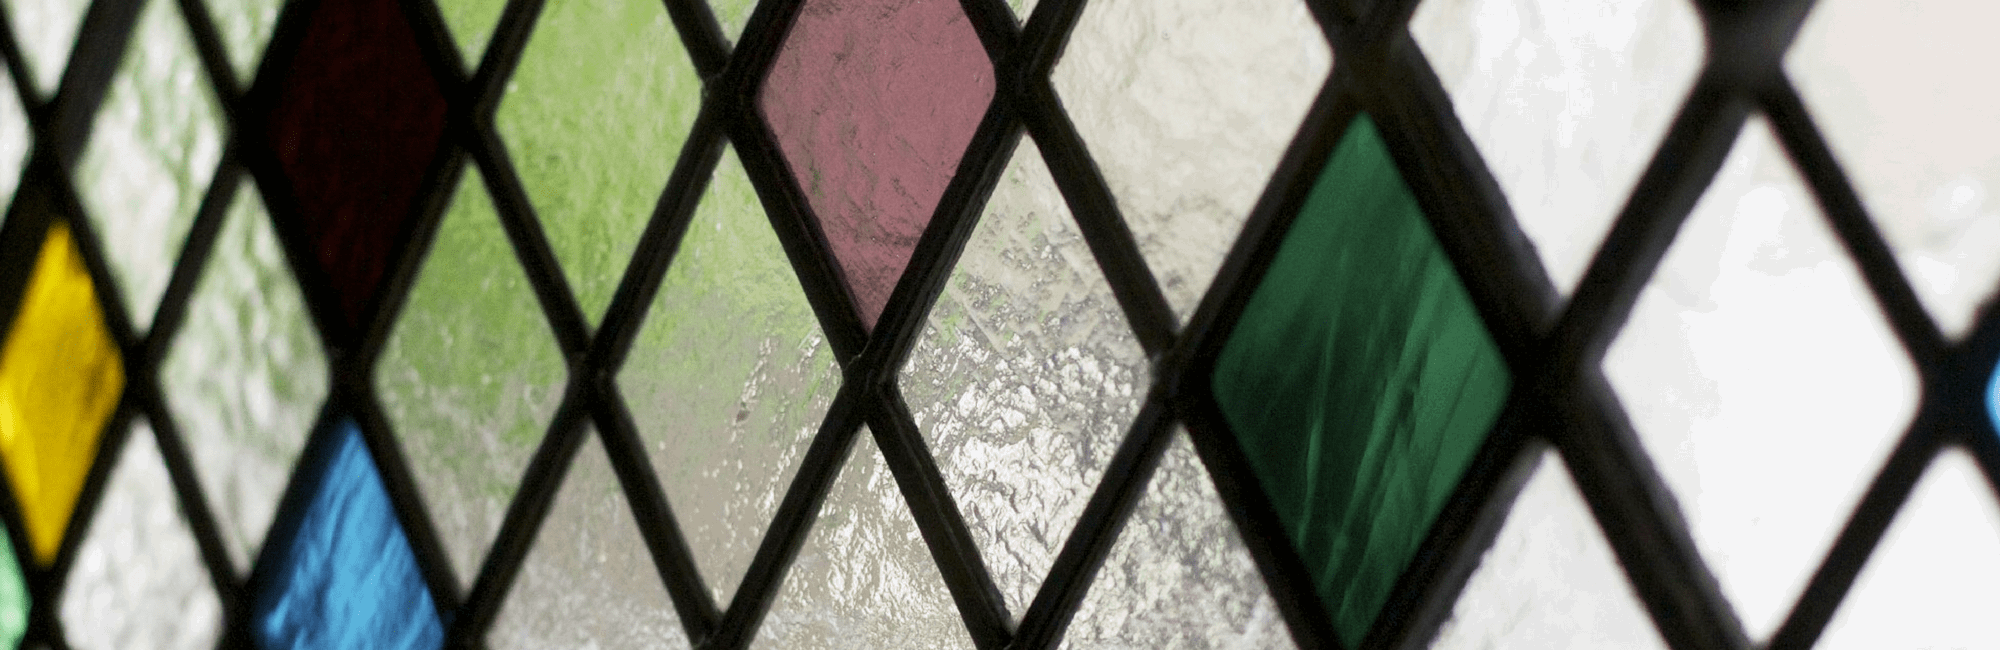 The Ivy's harlequin stained-glass windows